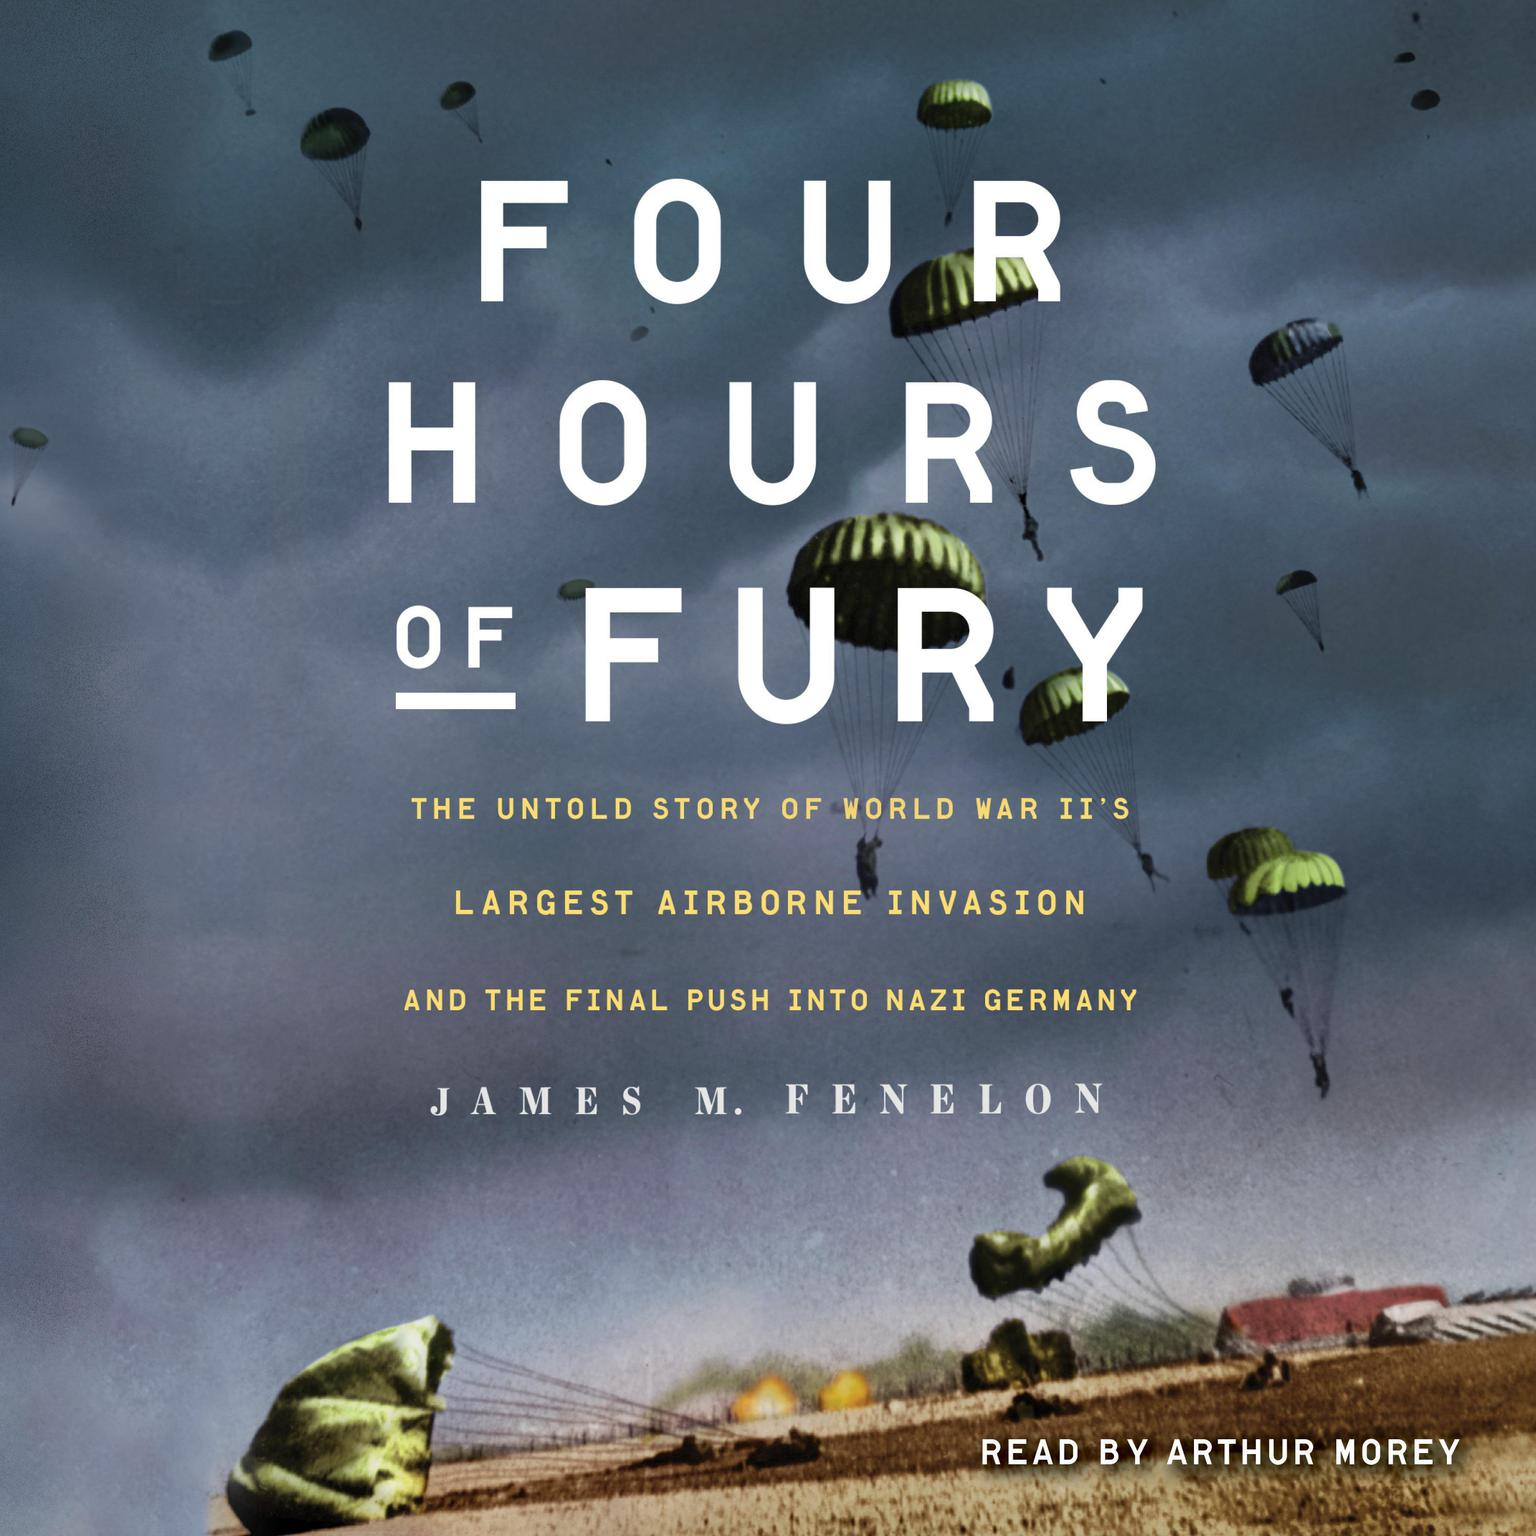 Printable Four Hours of Fury: The Untold Story of World War II's Largest Airborne Invasion and the Final Push into Nazi Germany Audiobook Cover Art